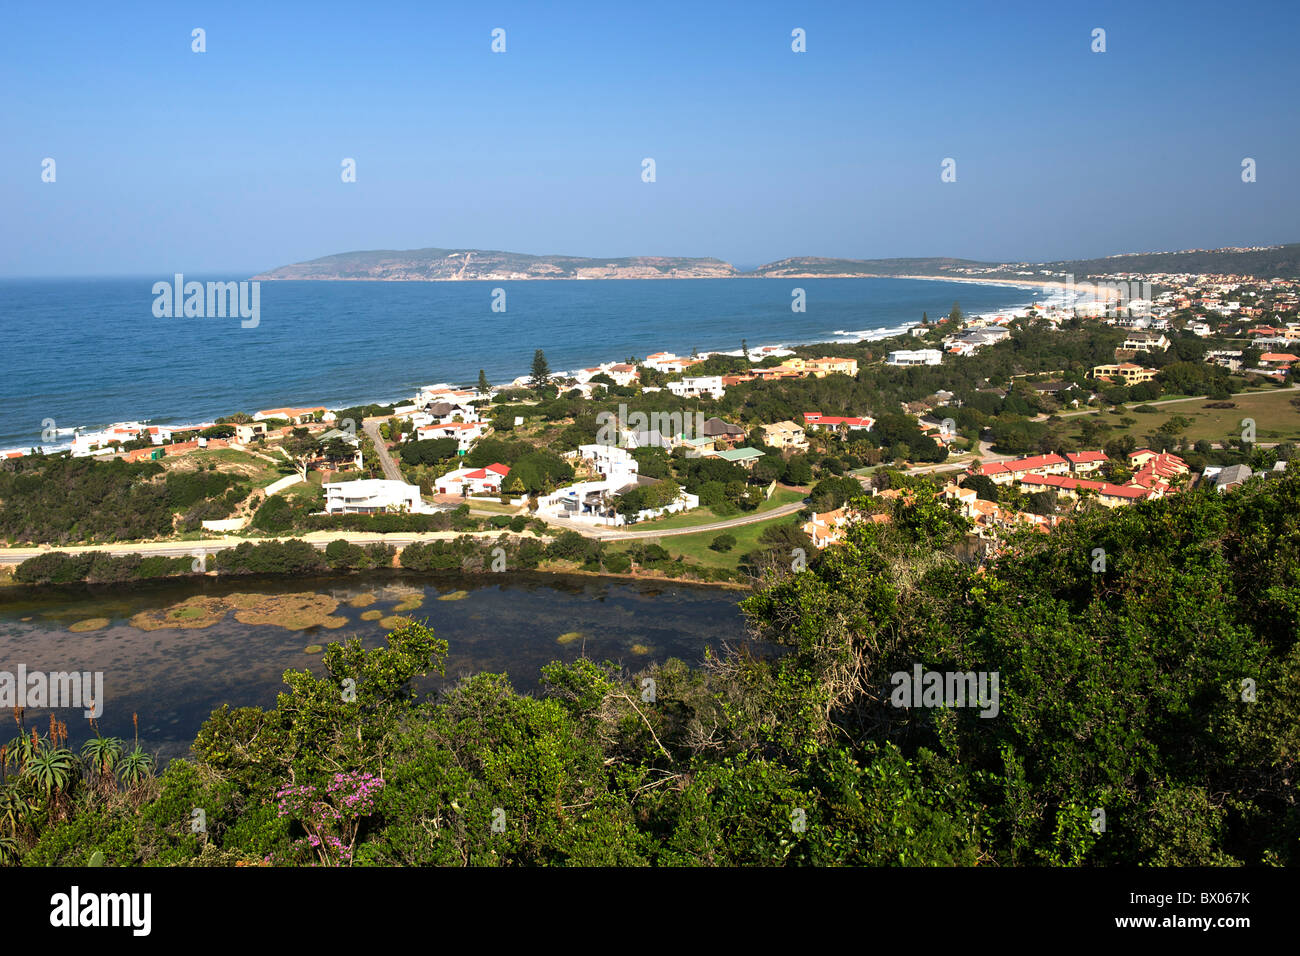 Plettenberg Bay and Robberg beach on the Garden Route in South Africa. - Stock Image